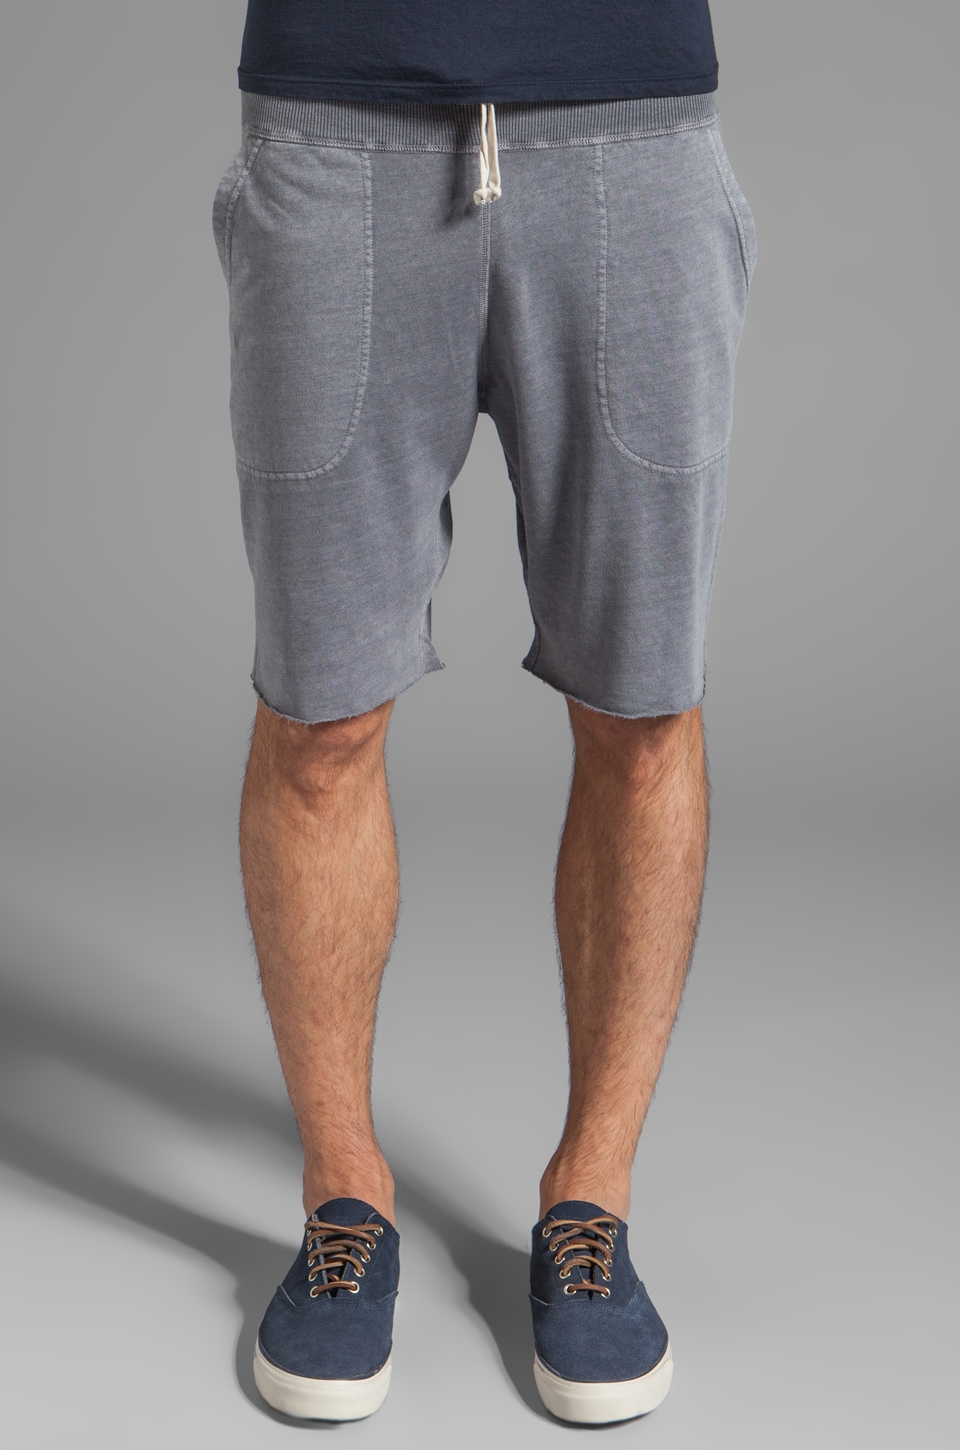 GANT Rugger Cut Off Lazy Pant in Dark Grey Melange